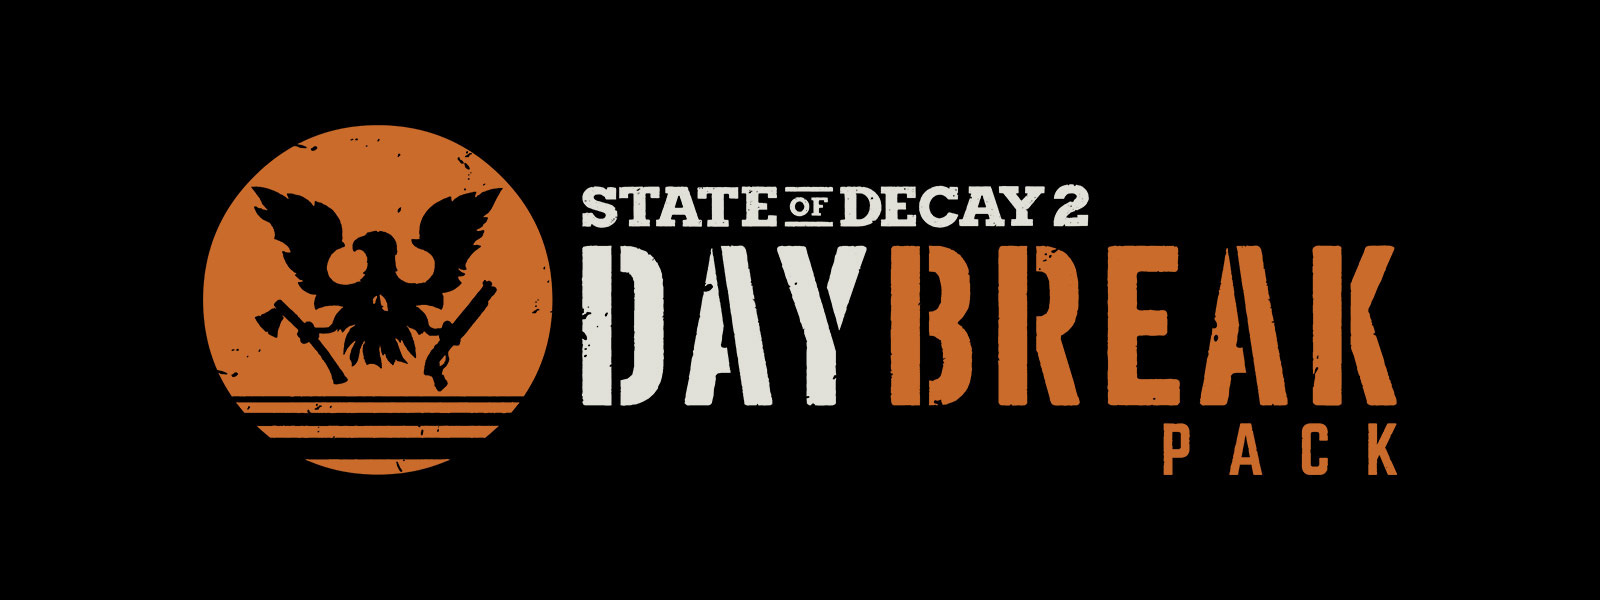 State of Decay 2 Daybreak Pack DLC logo